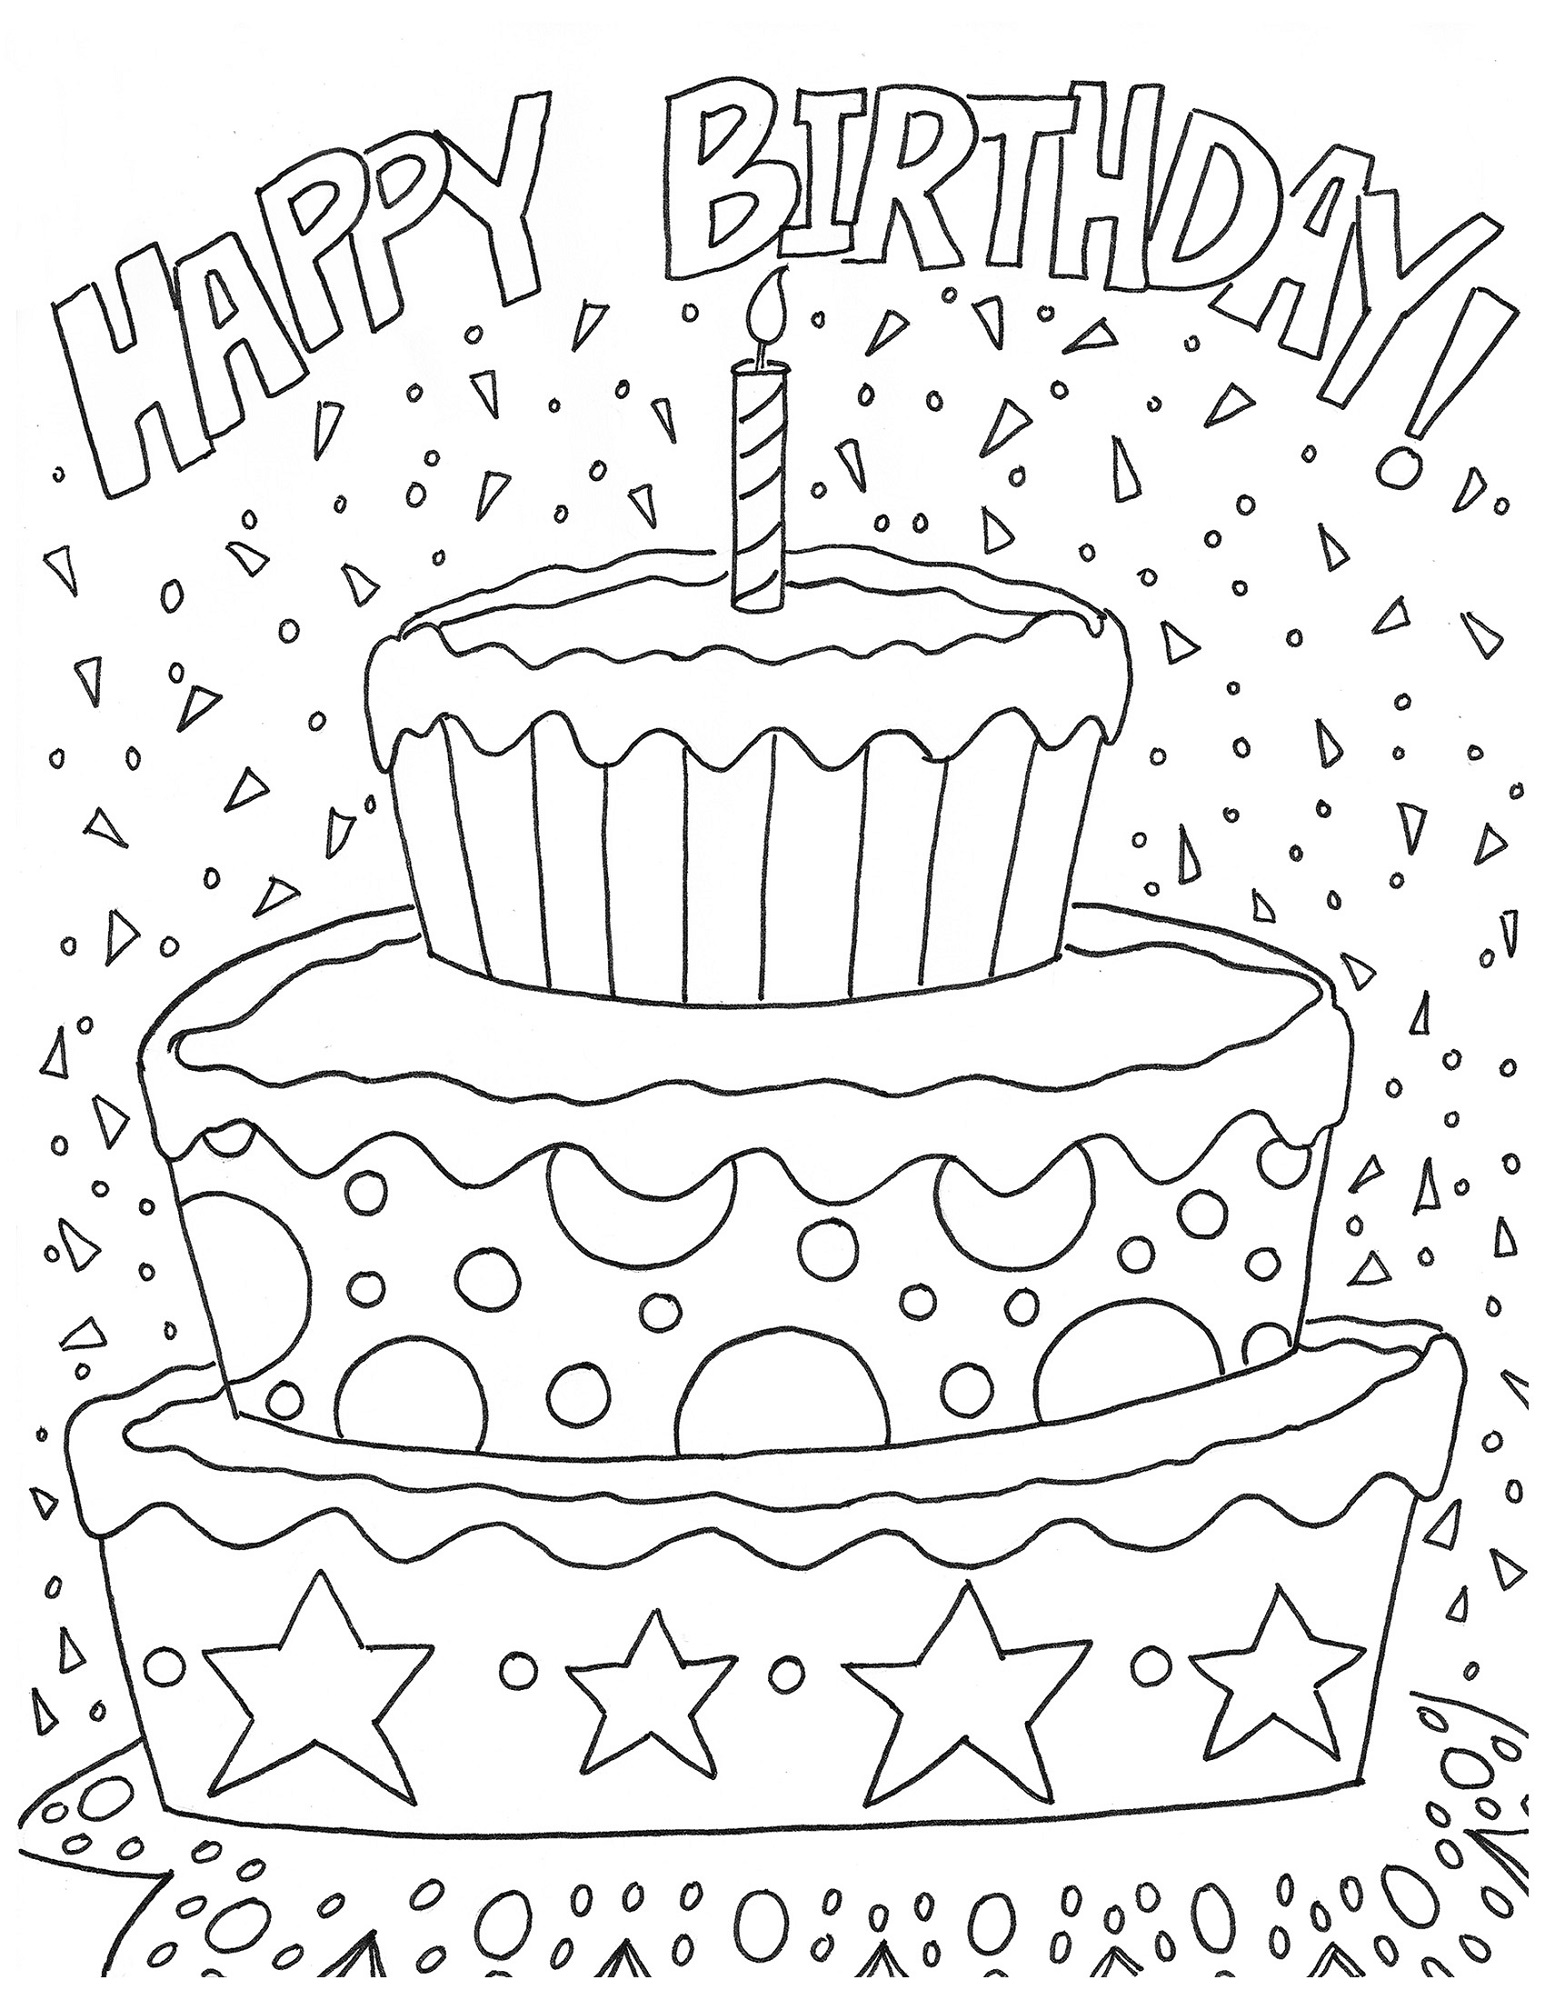 birthday cake color page worksheet